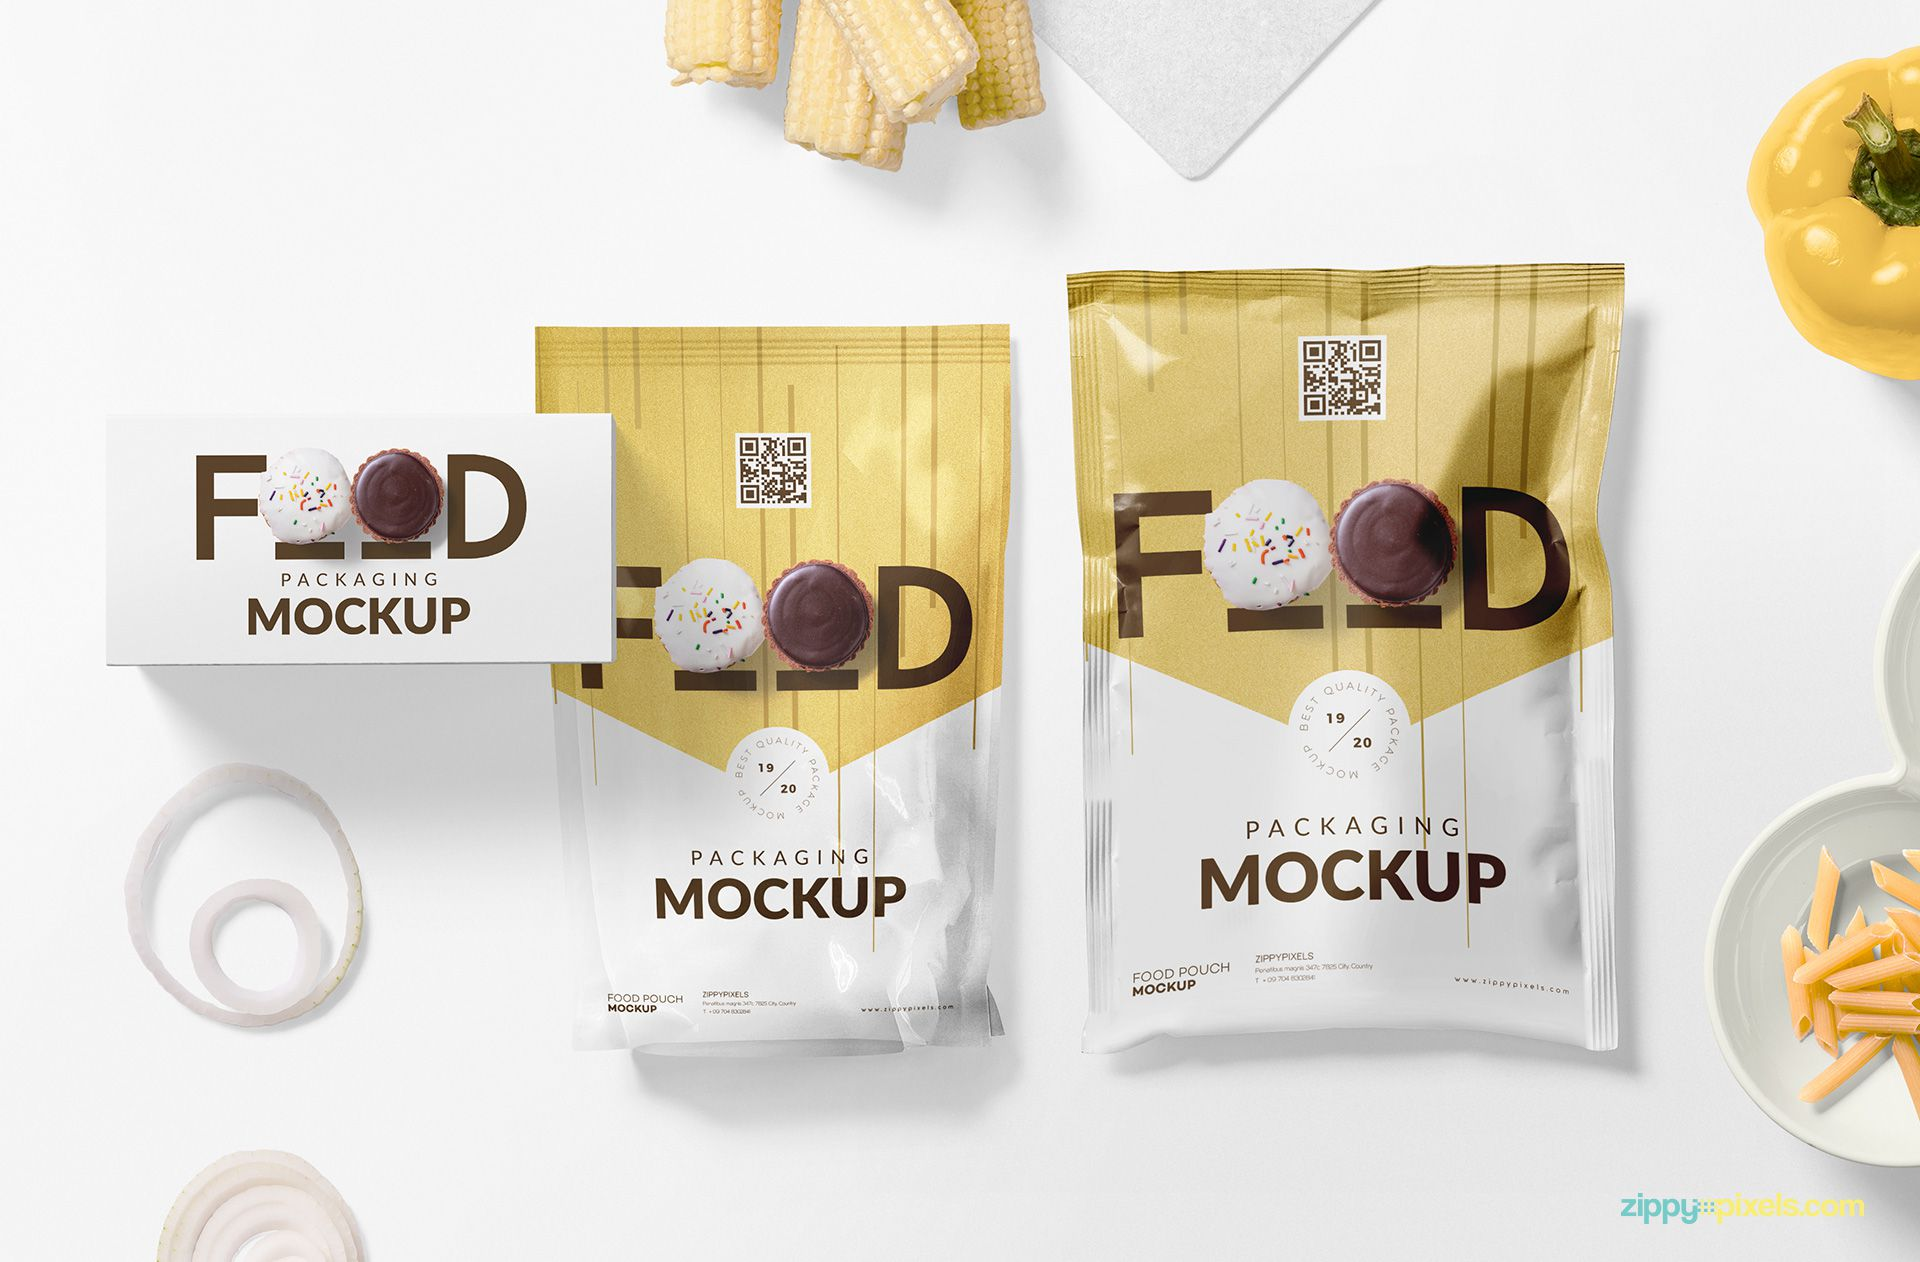 Packet and sachet mockup in one scene.